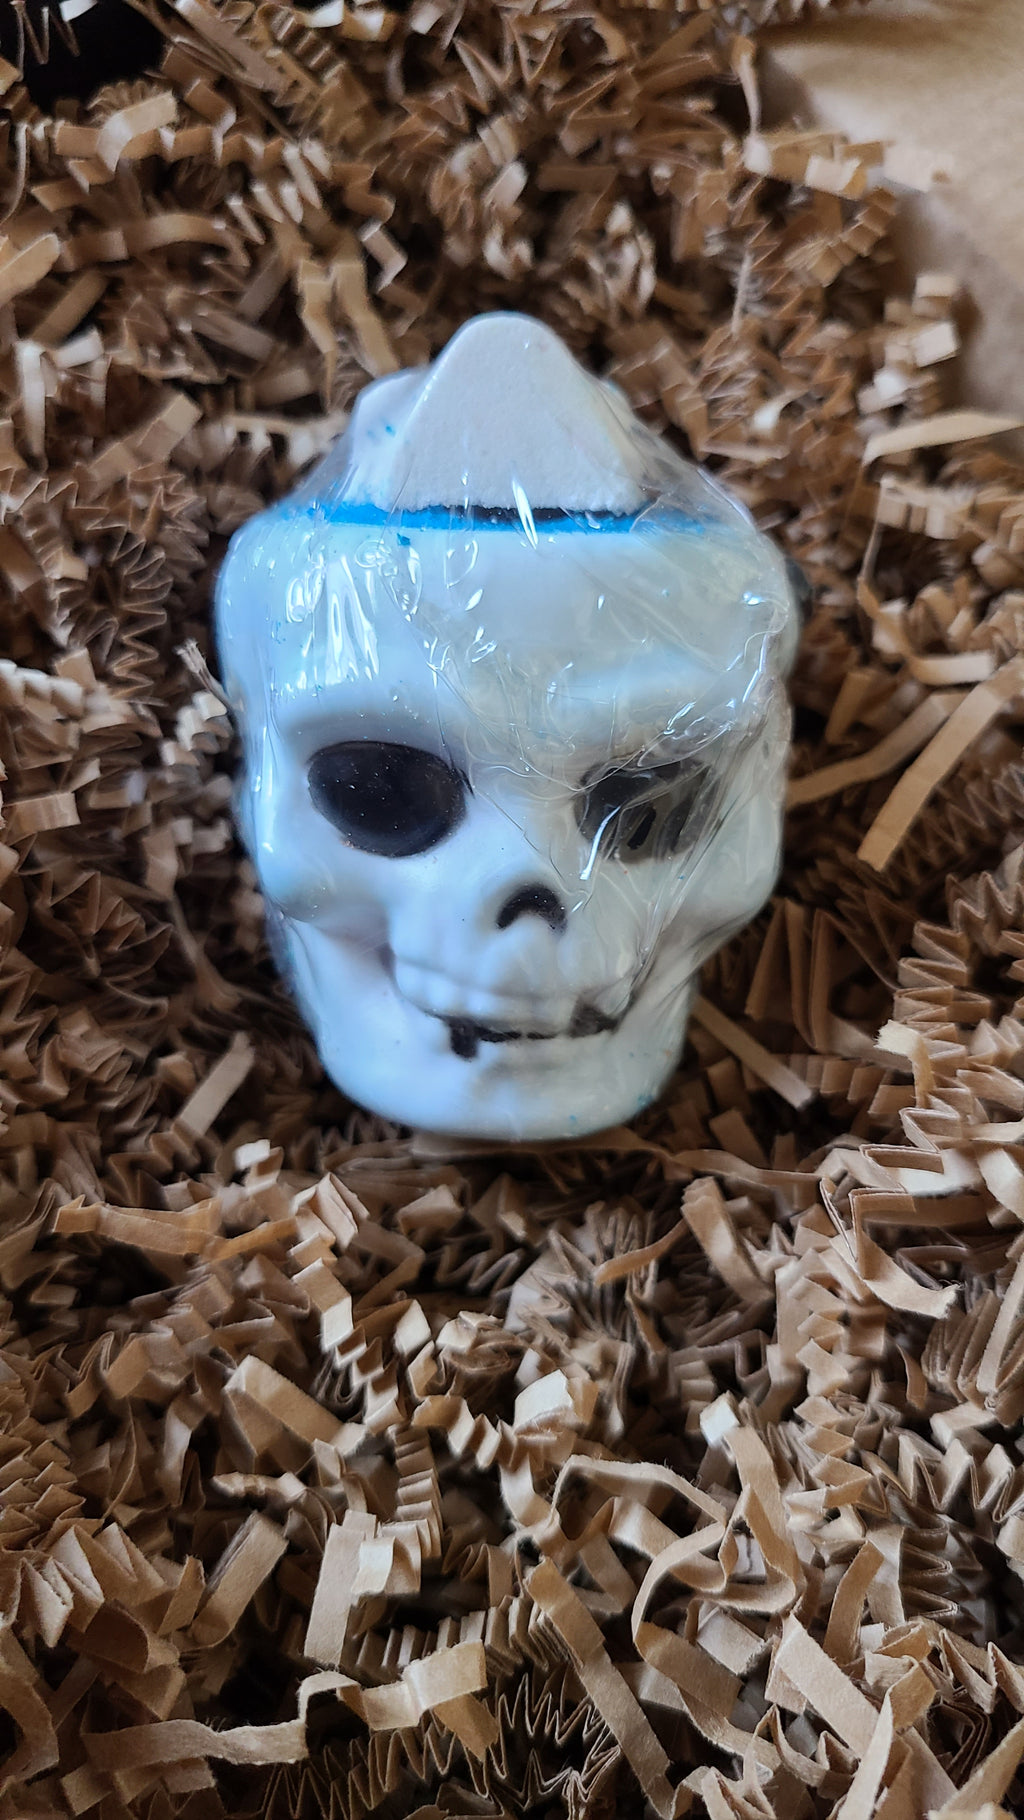 Skelly-Gro Bucket Bath Bomb